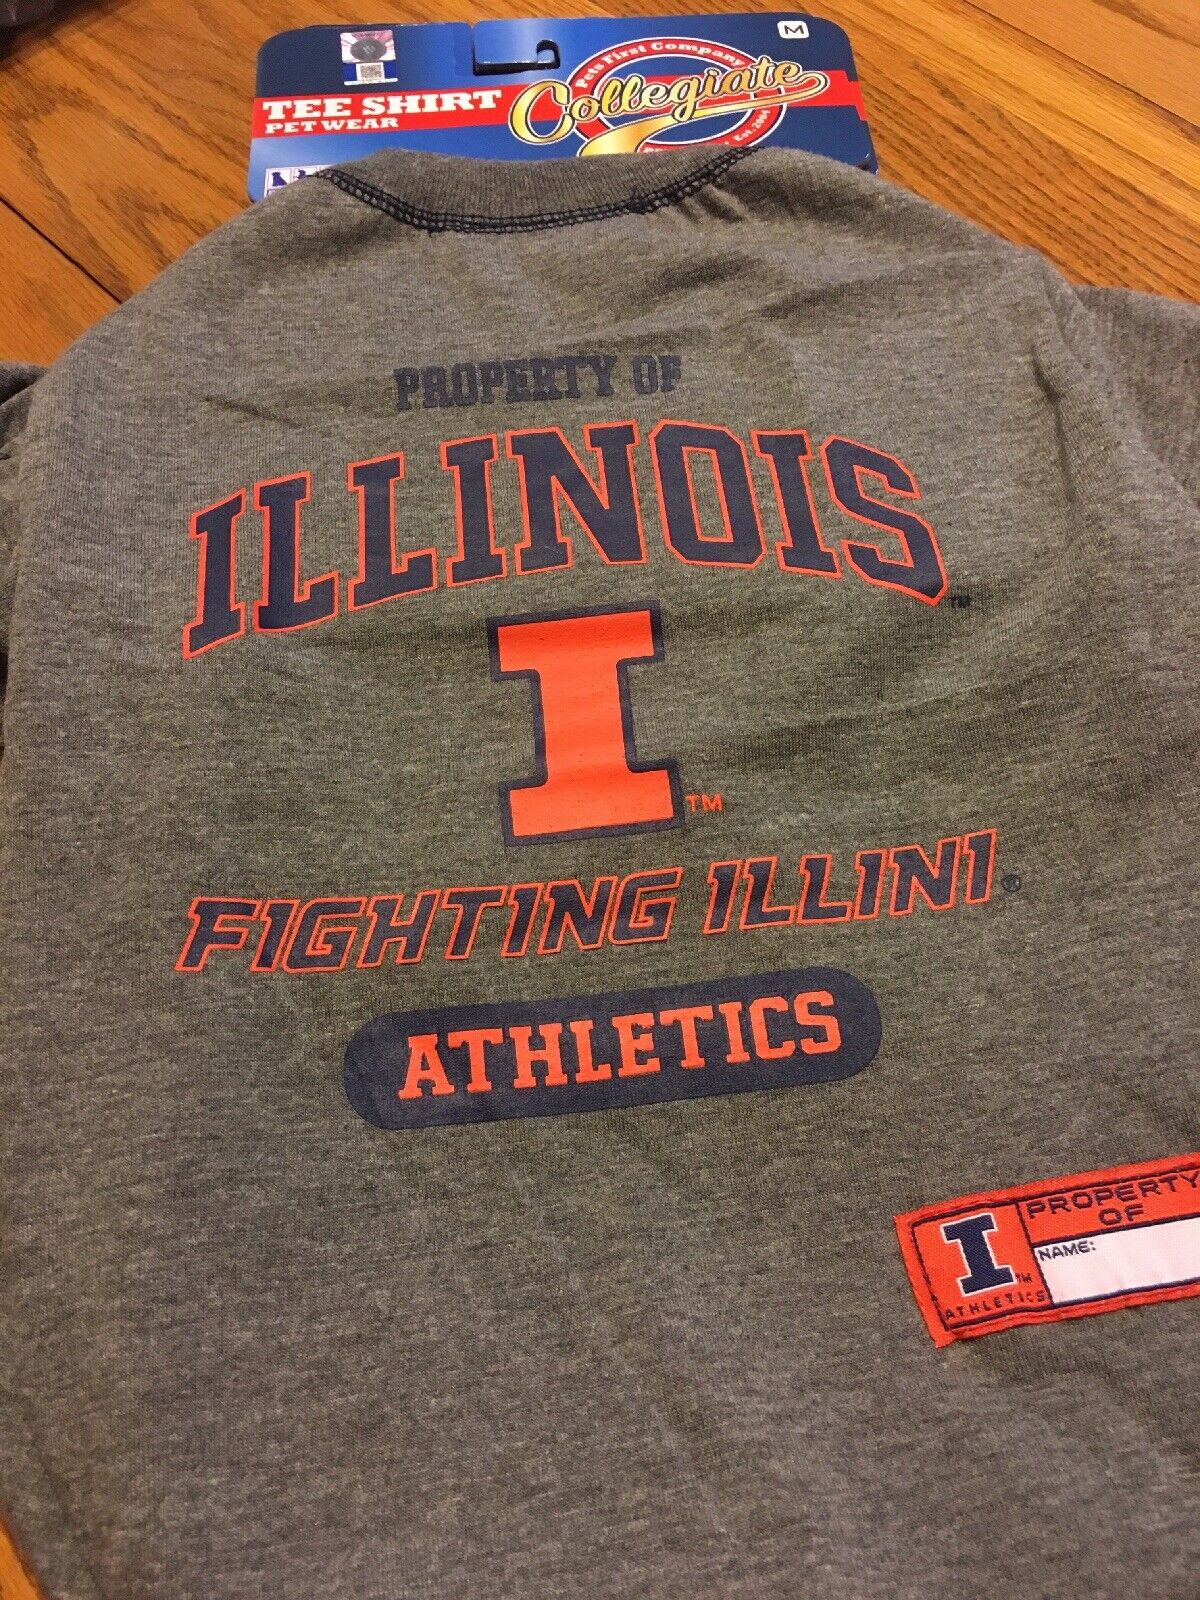 Pet Wear Tee-Shirt Property Of Illinois Athletics.